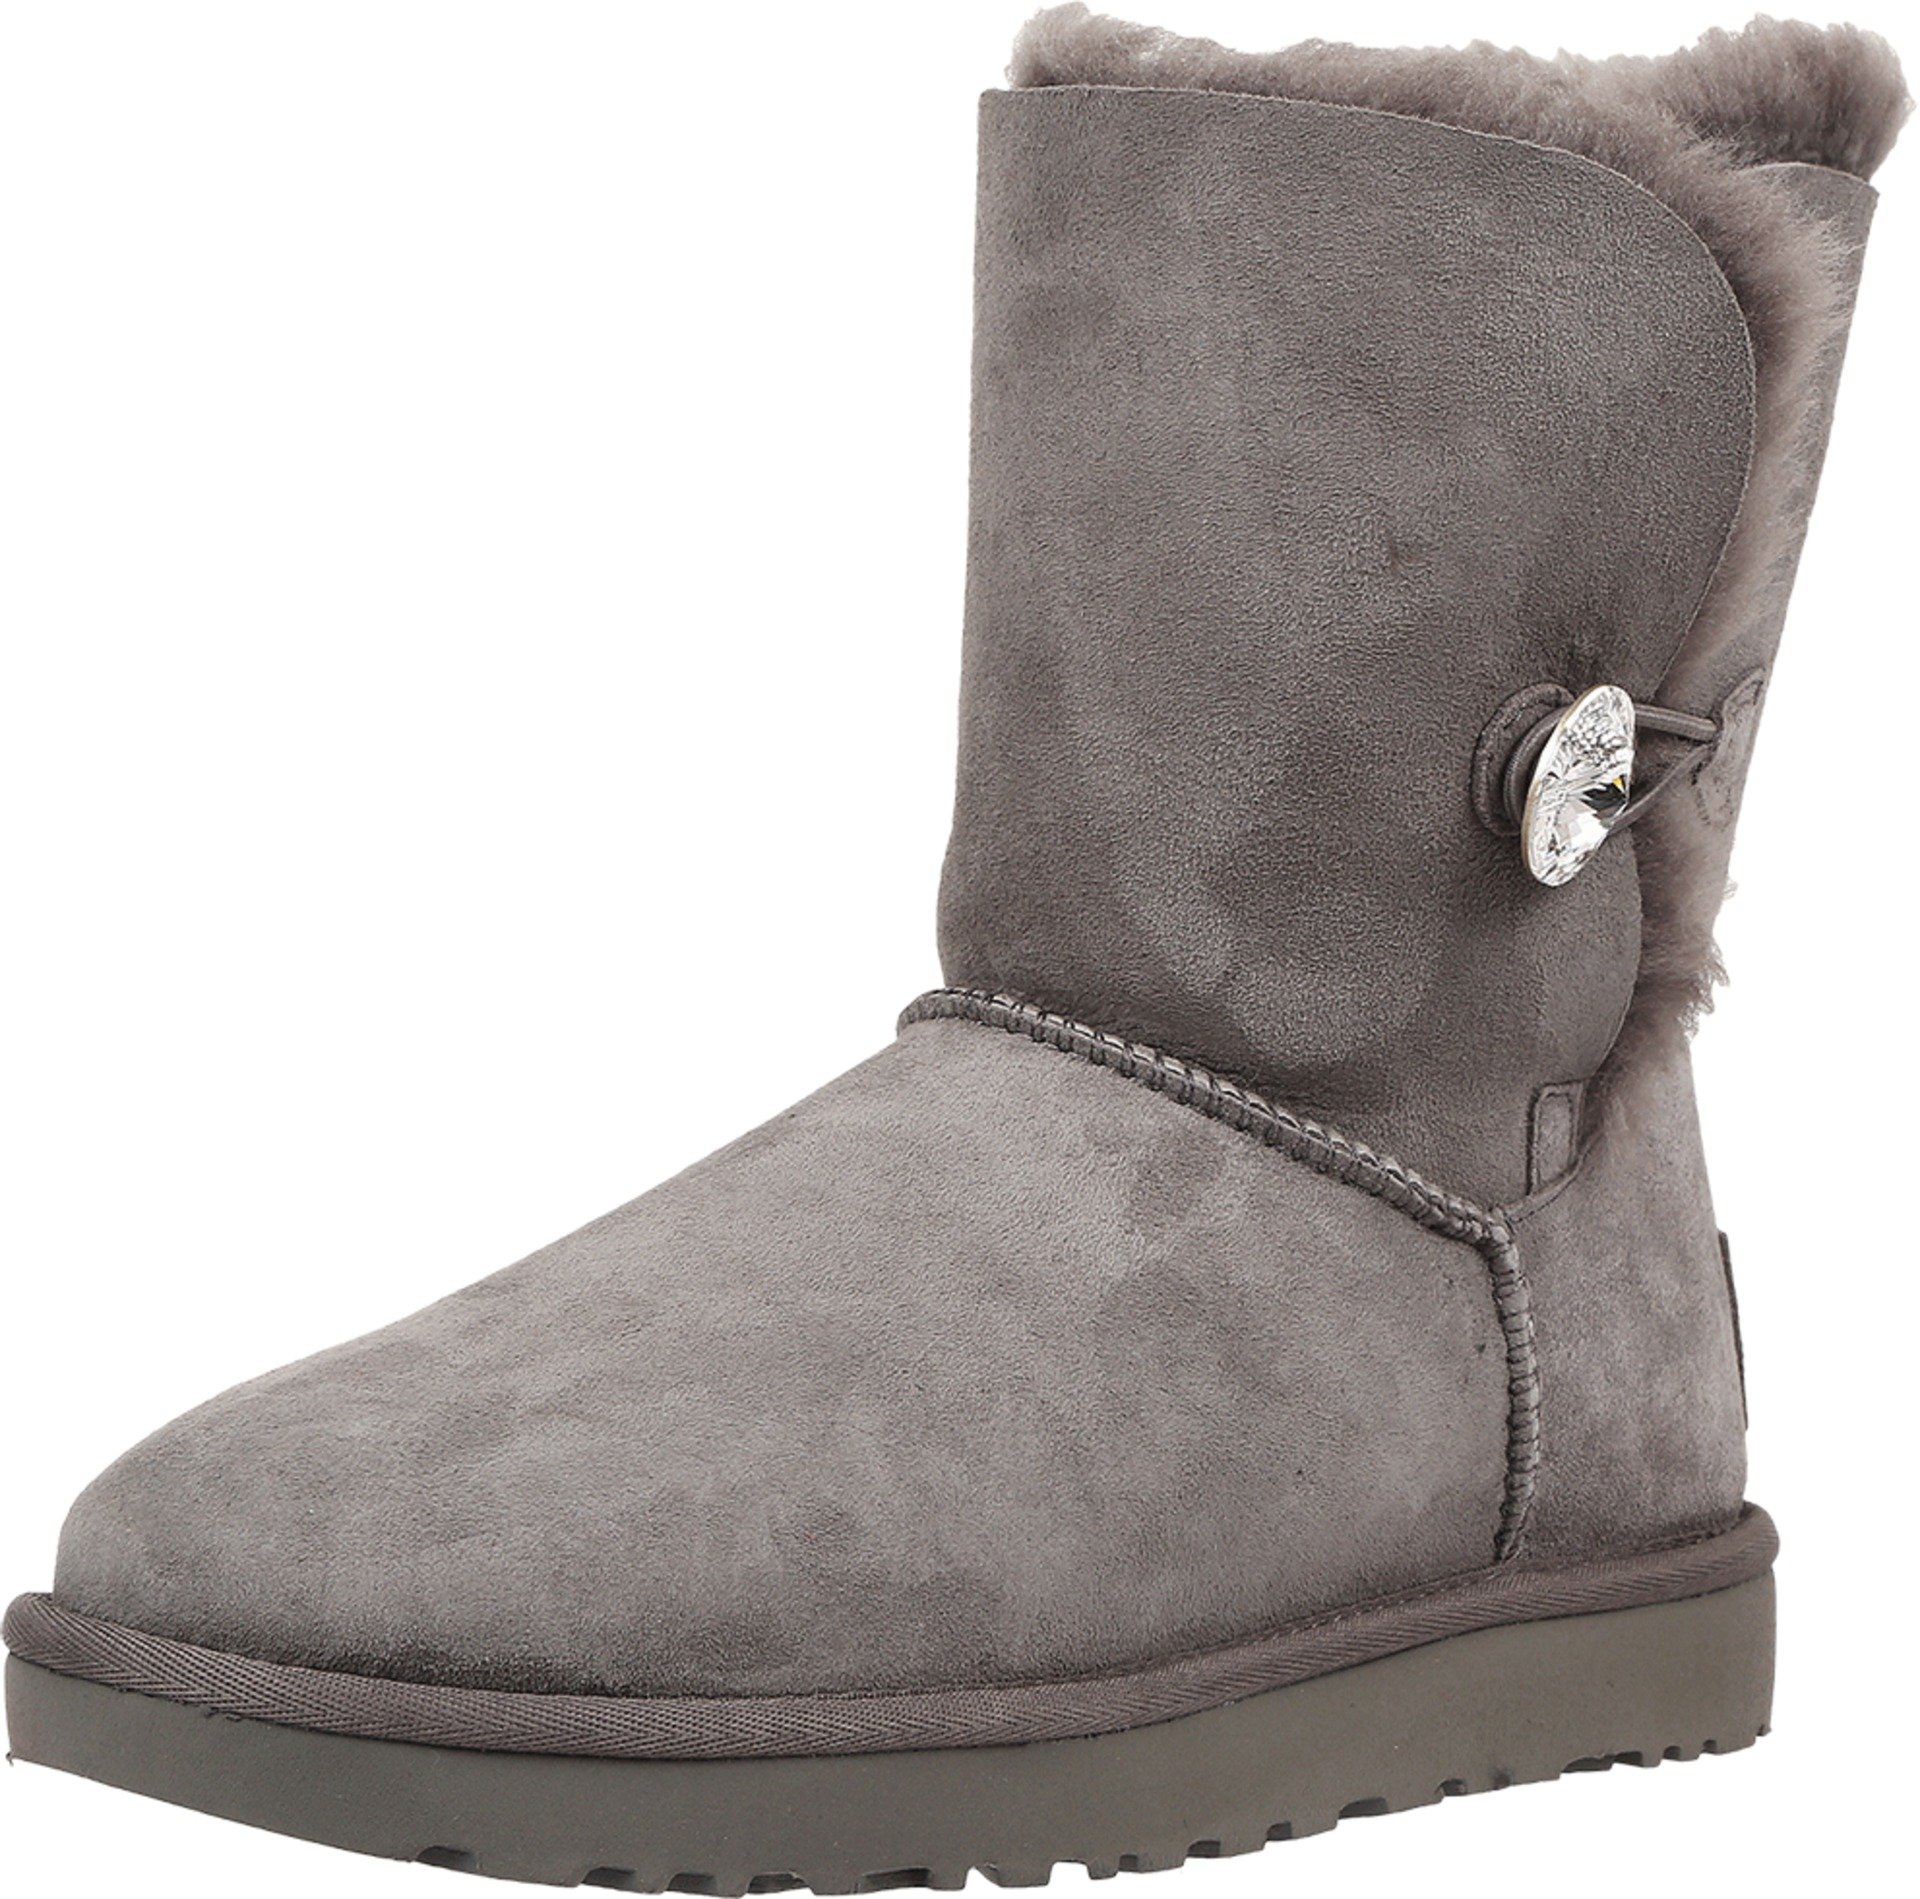 UGG Women's Bailey Button Bling Winter Boot, Grey, 7 B US